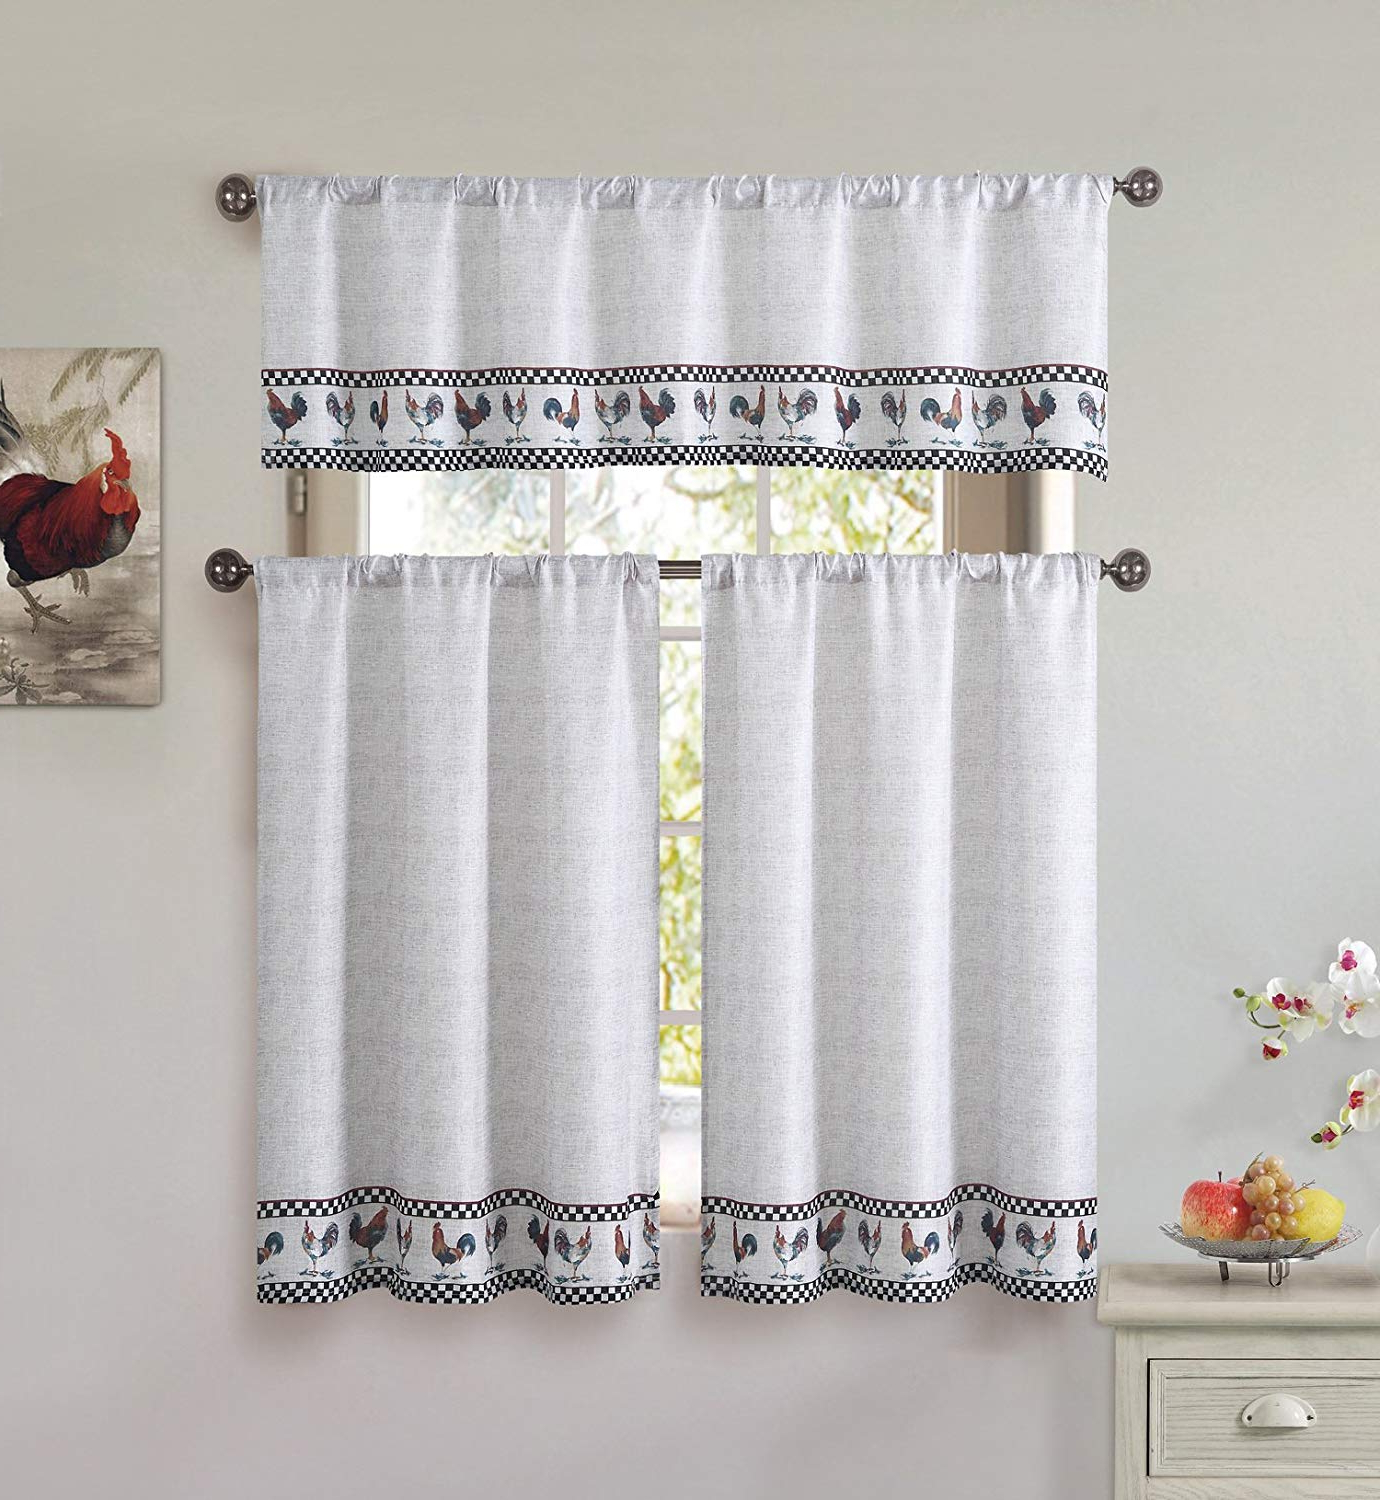 Preferred Cotton Blend 3 Piece Kitchen/cafe Tier Window Curtain Set: Rooster And Check Design Within Embroidered Chef Black 5 Piece Kitchen Curtain Sets (View 20 of 20)